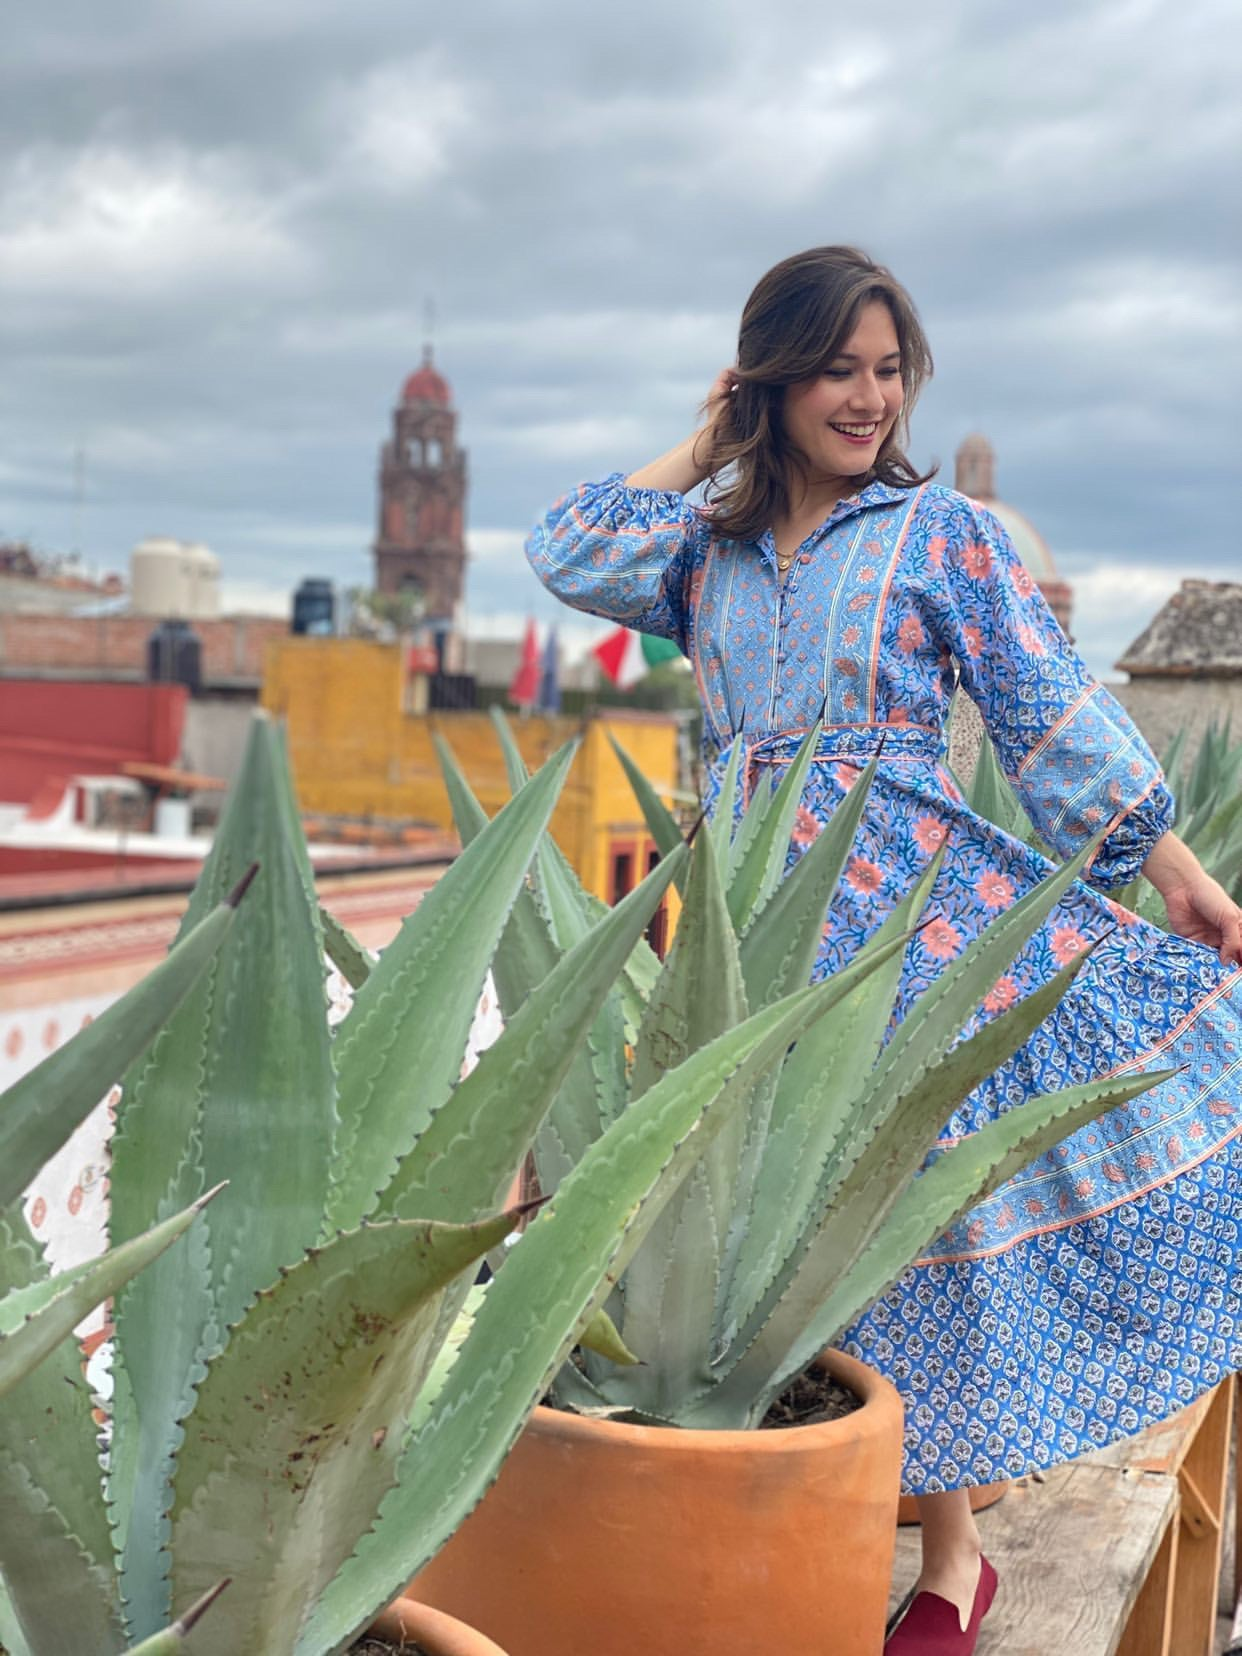 Paloma Flounce Dress for Amparo | San Miguel de Allende ~ Lapis / Adobe Block Print